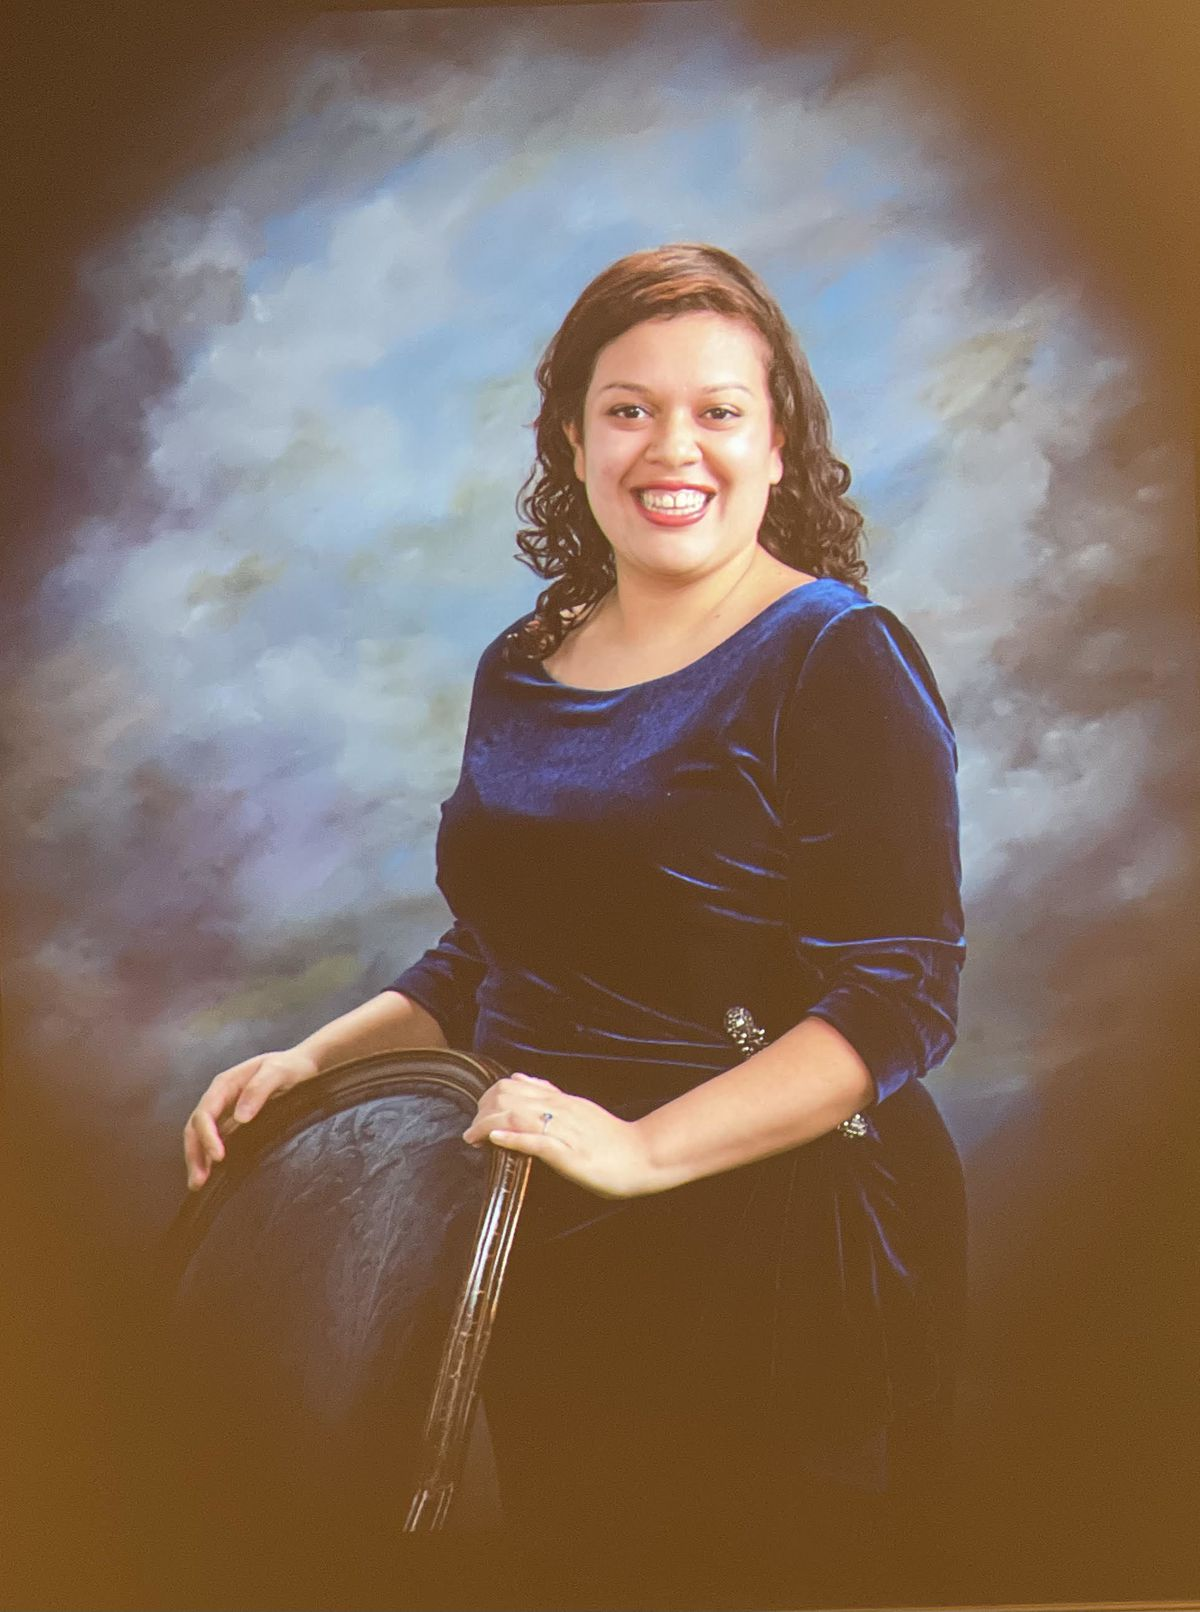 A formal portrait of a woman wearing a dark blue dress holding the back of a chair. She is seen smiling at the camera.